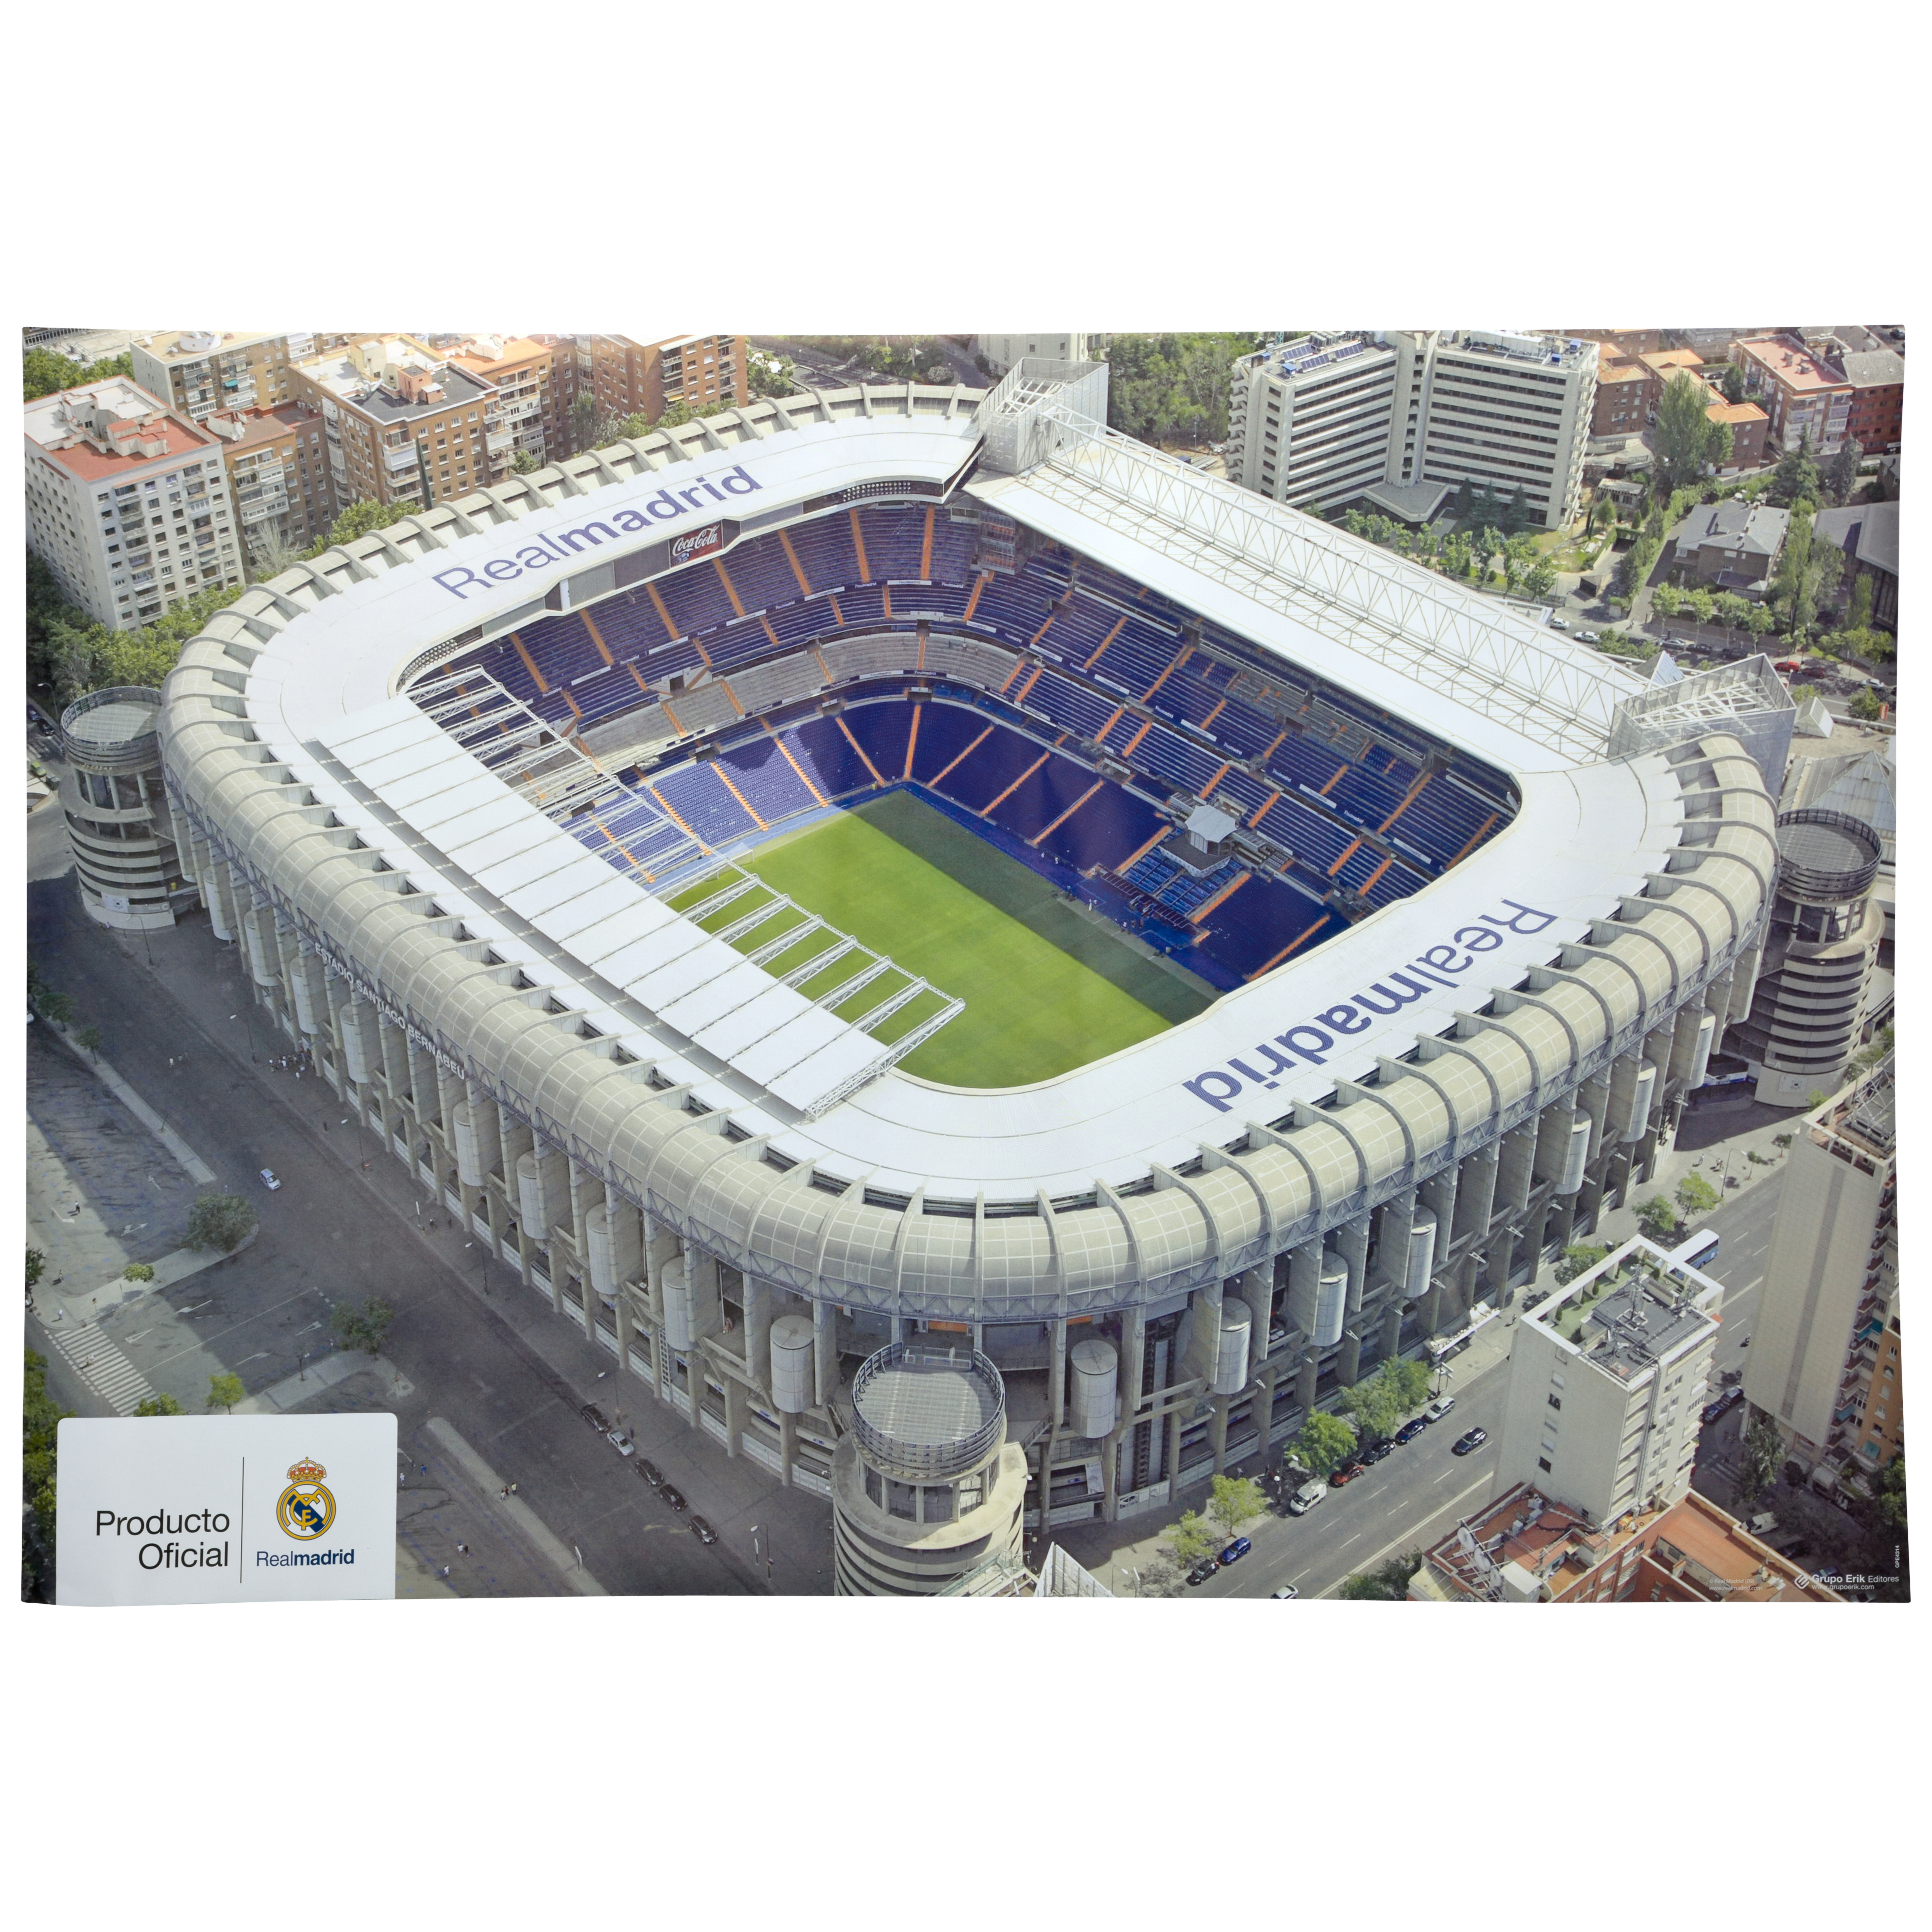 Pster del Real Madrid del estadio - 61 x 91.5cm